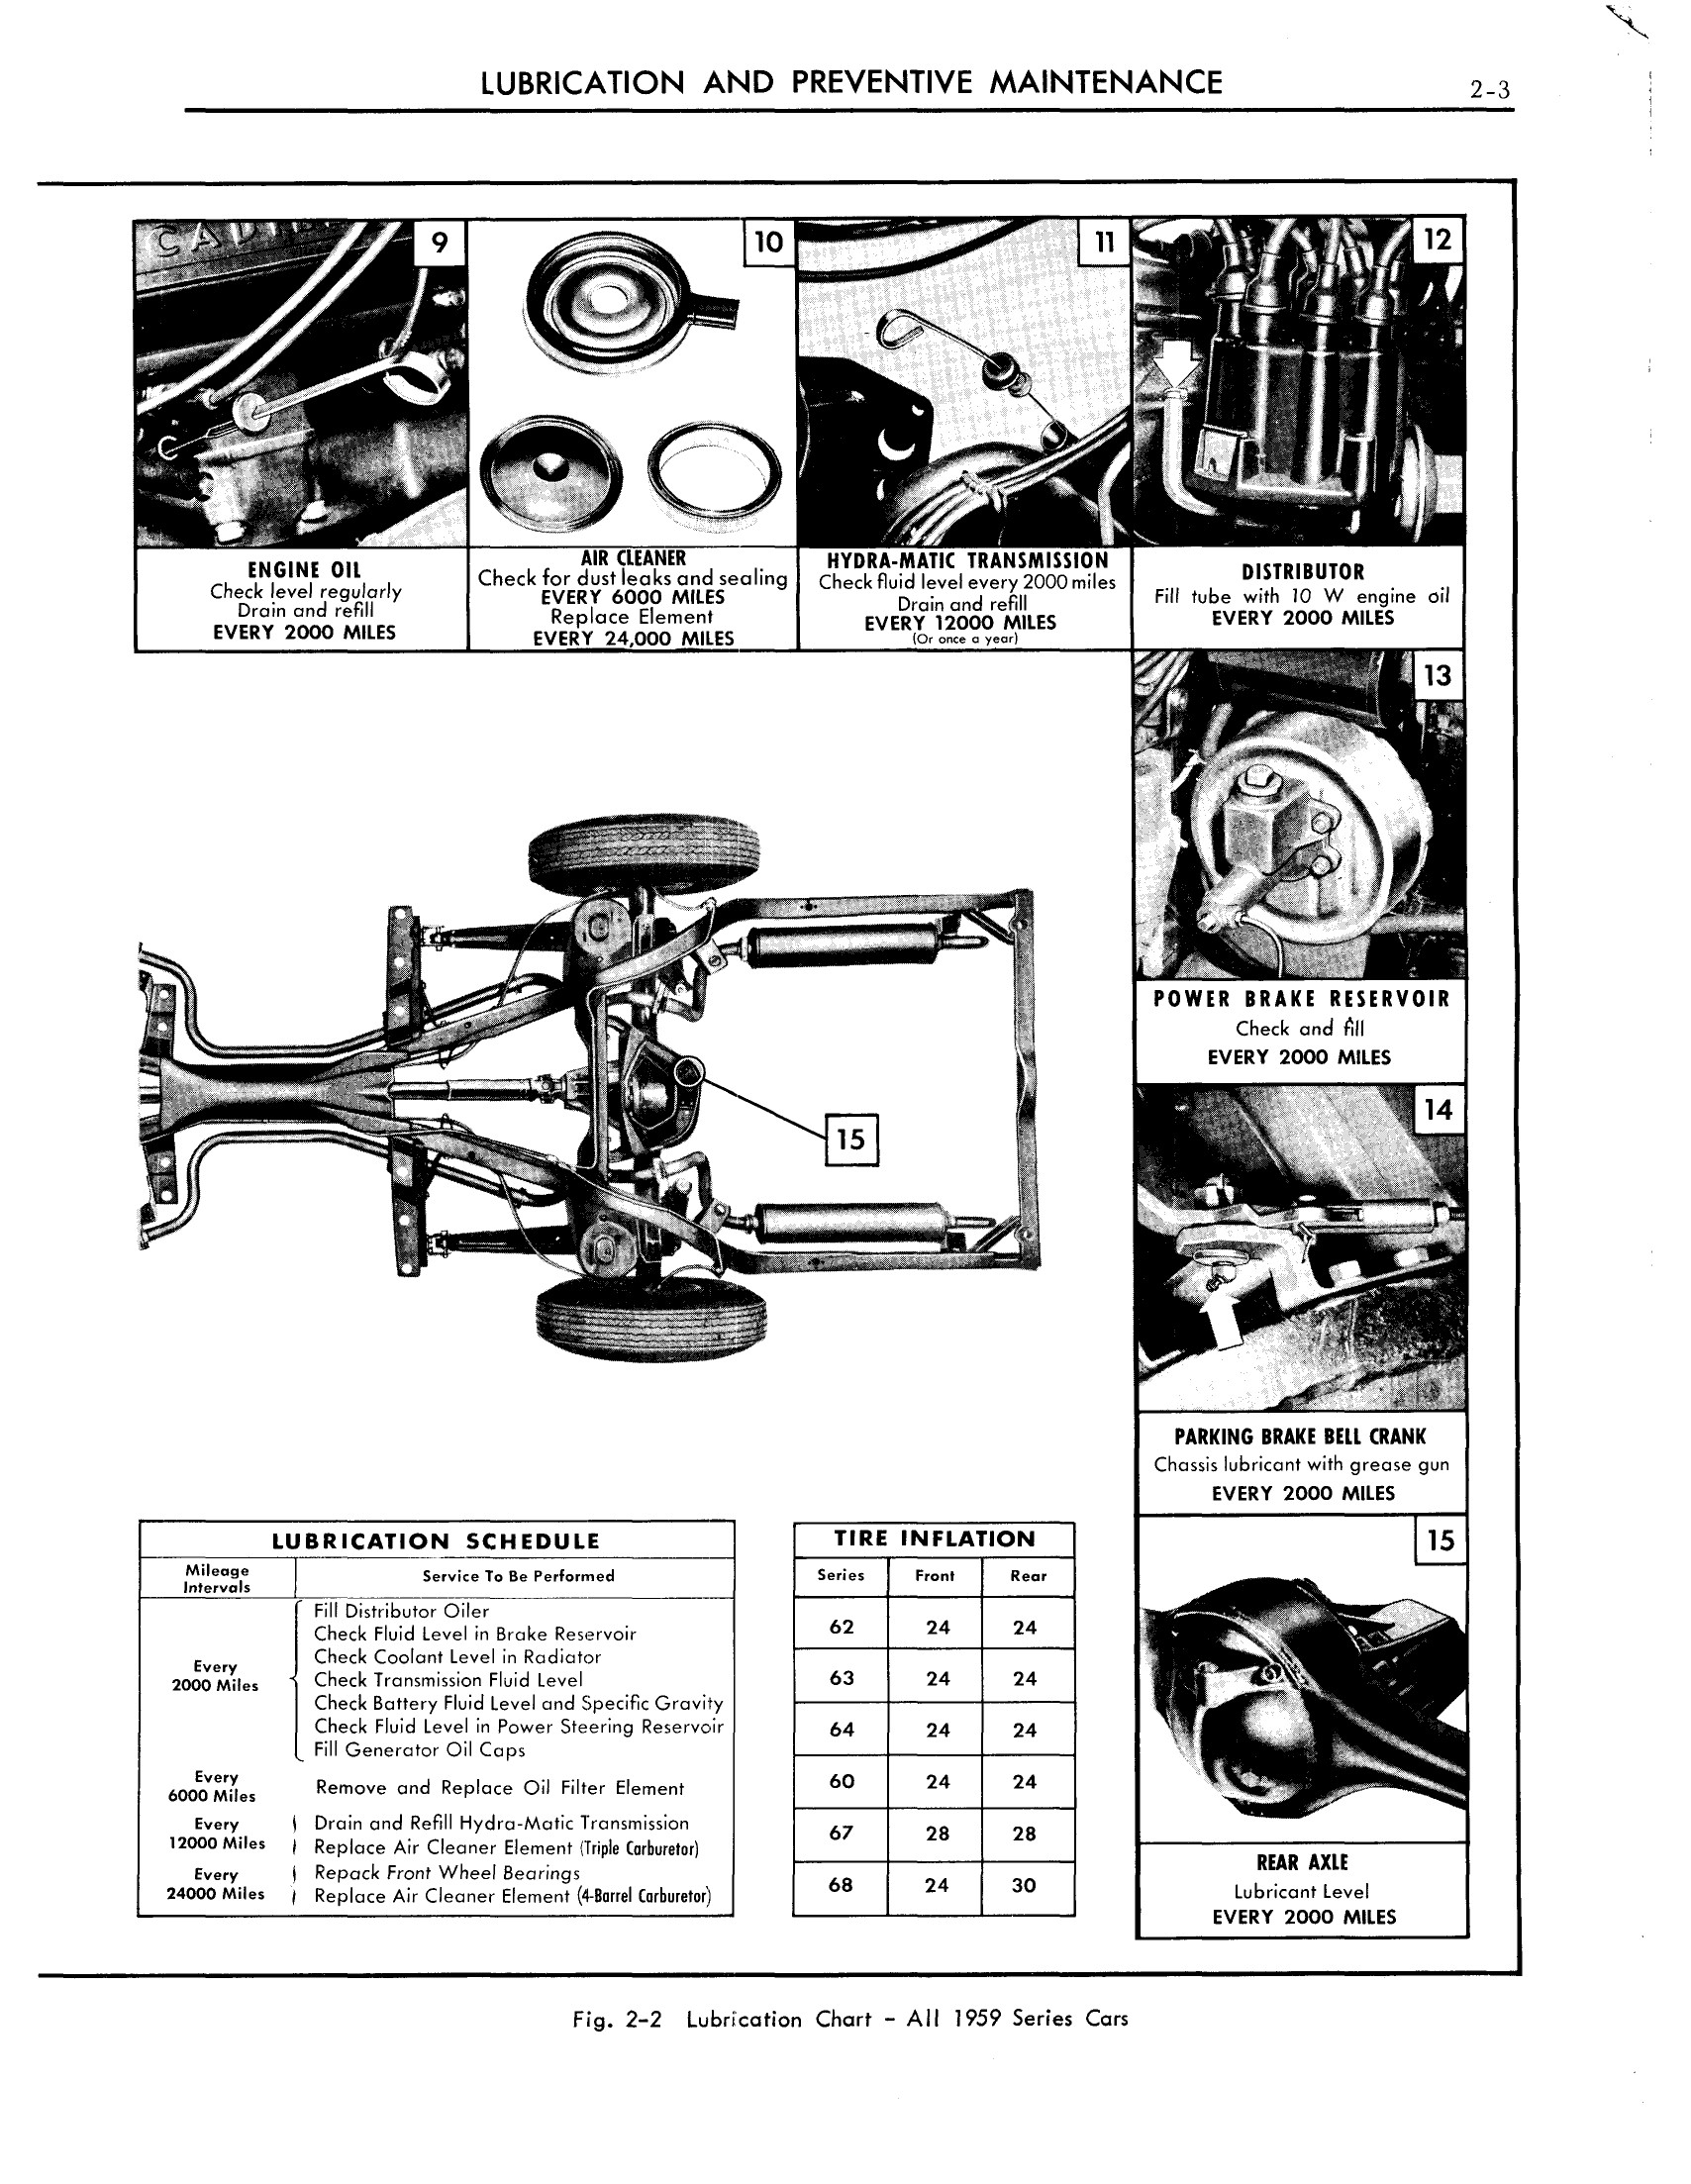 1959 Cadillac Shop Manual- Lubrication Page 3 of 7